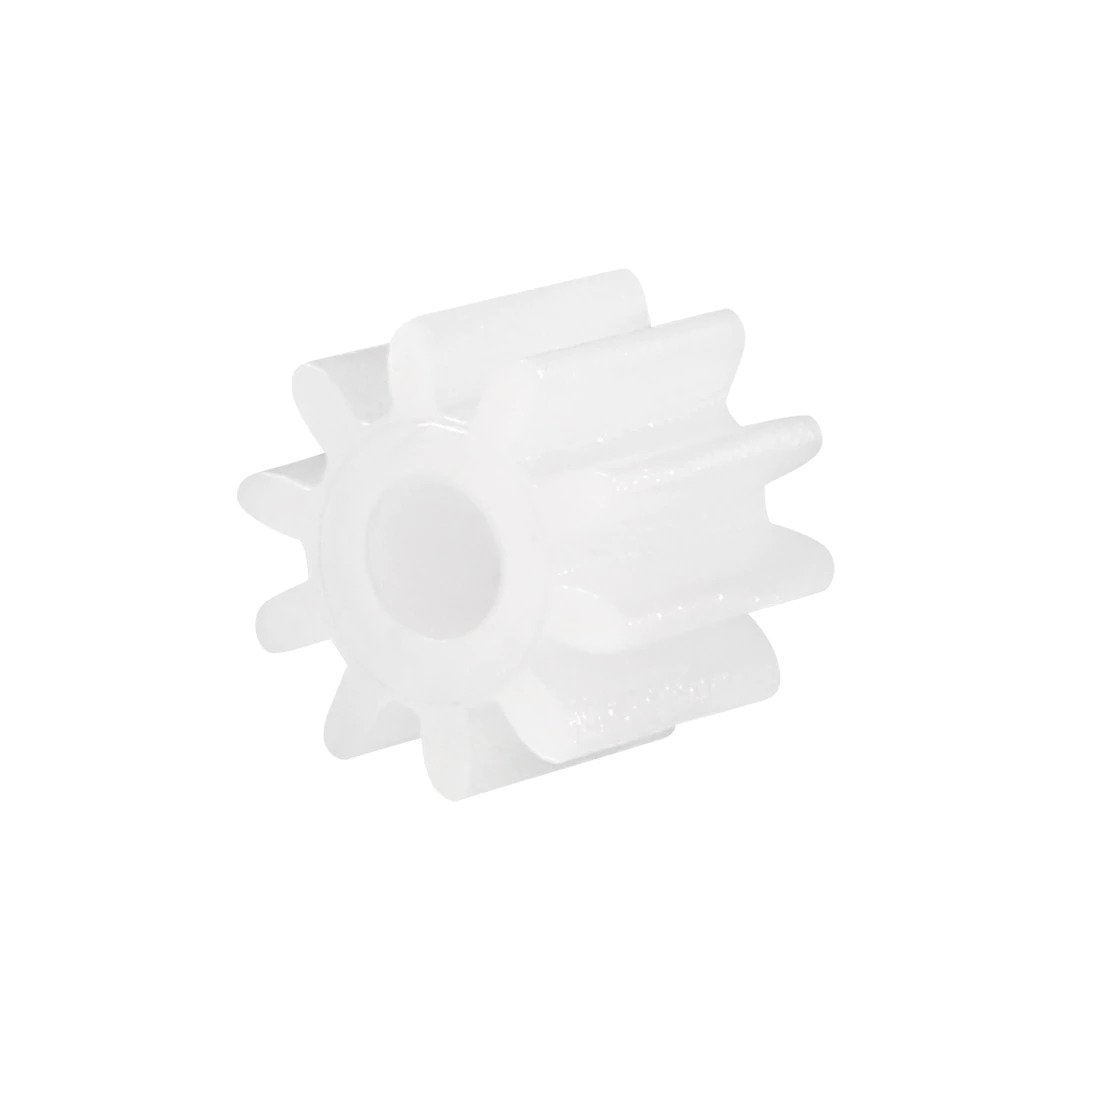 Replacement Gear for Hornby